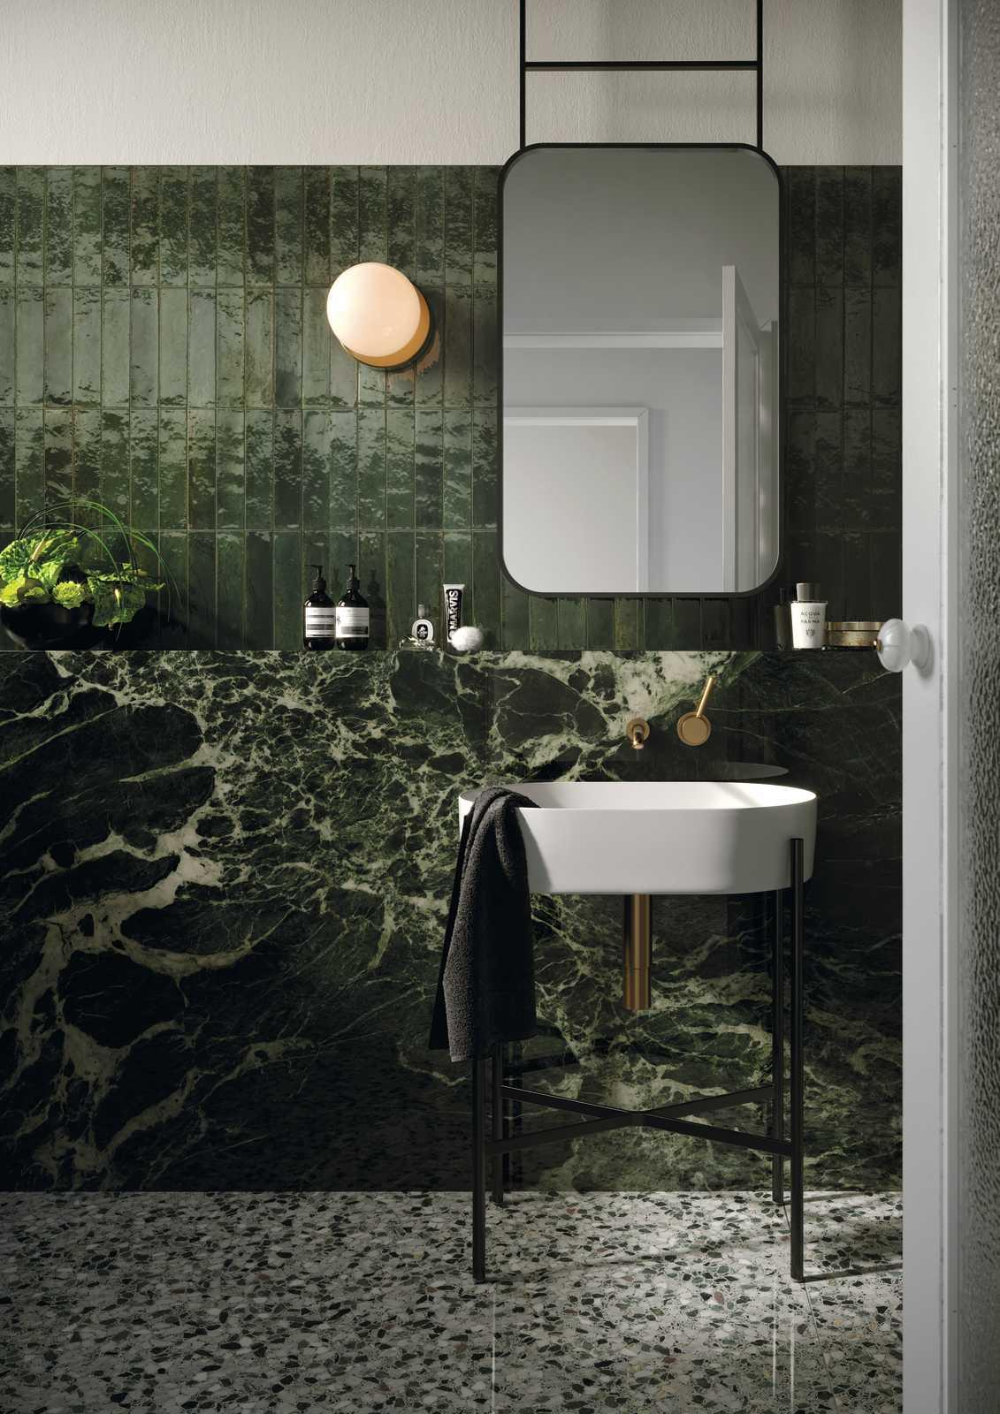 Lume Green Lux Melbourne S Leading Suppliers Of Tile Stone Cerdomus Tiles In 2020 Bathroom Interior Design Green Bathroom Modern Bathroom Decor